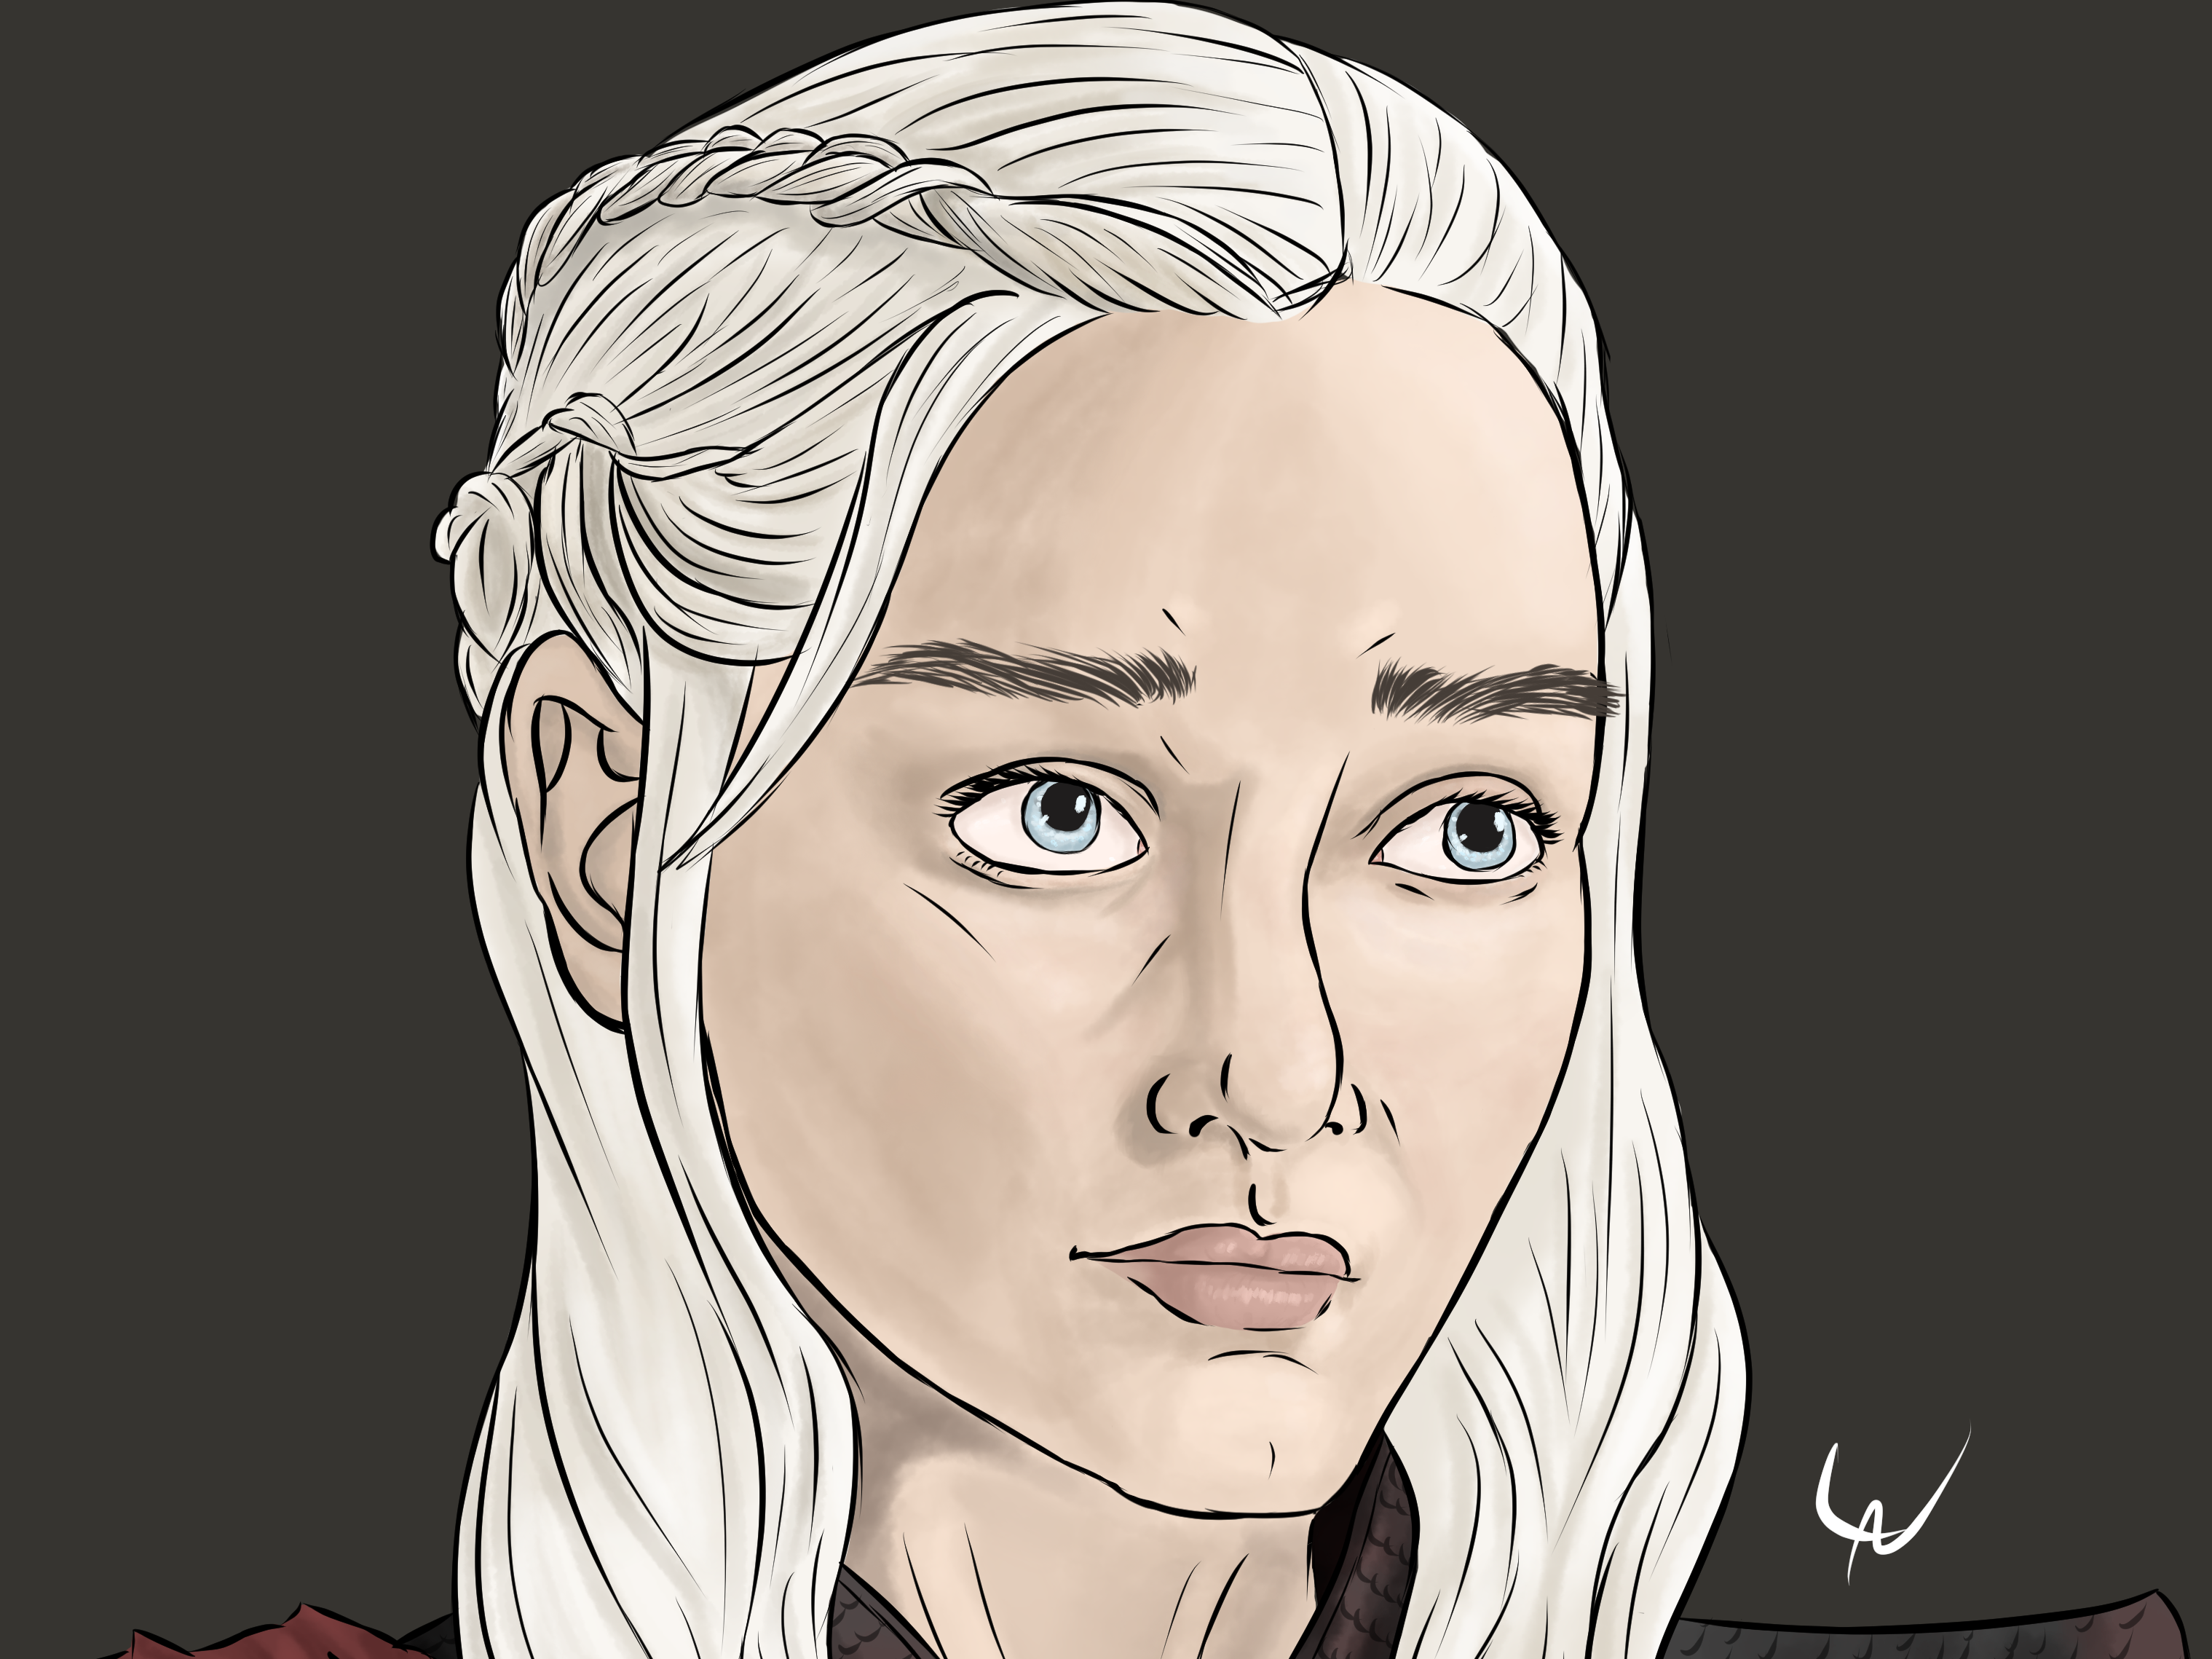 Daenerys Dragon Illustration By Lara 2 0 On Dribbble